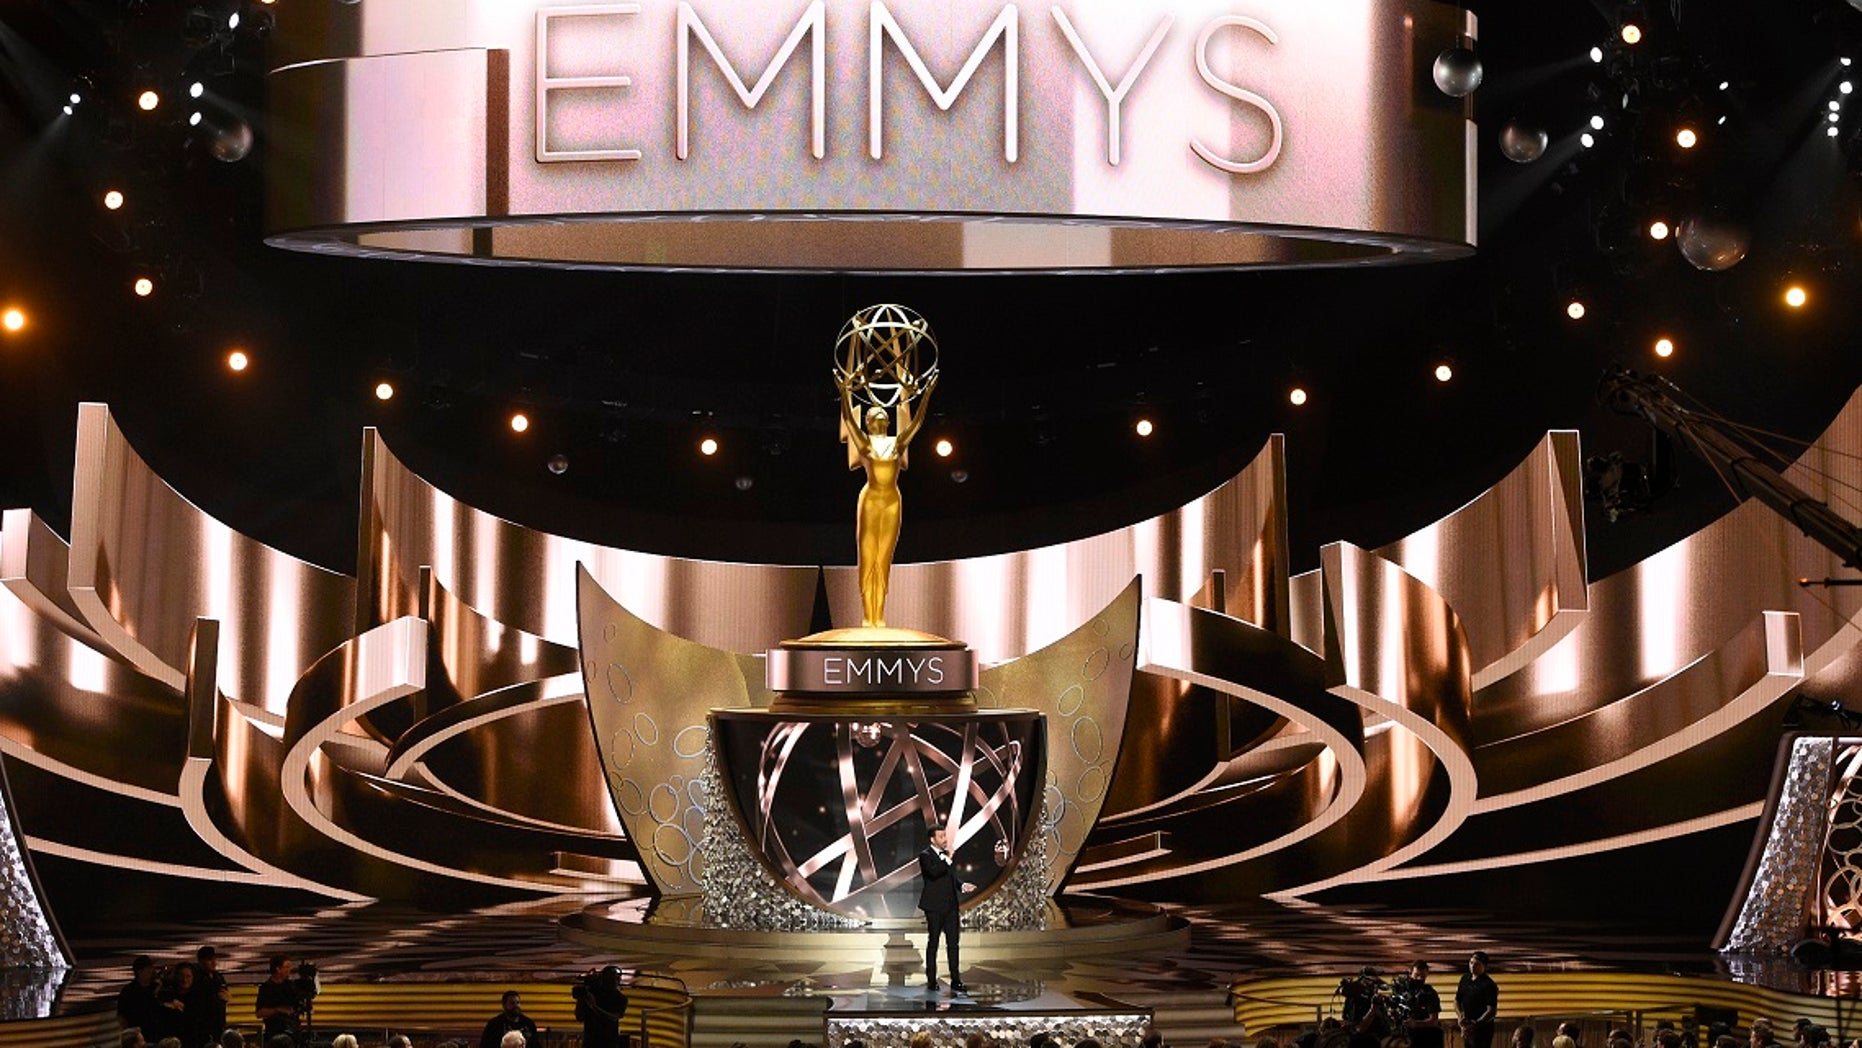 The 2017 Emmy nominations were announced on Thursday, July 13, 2017.